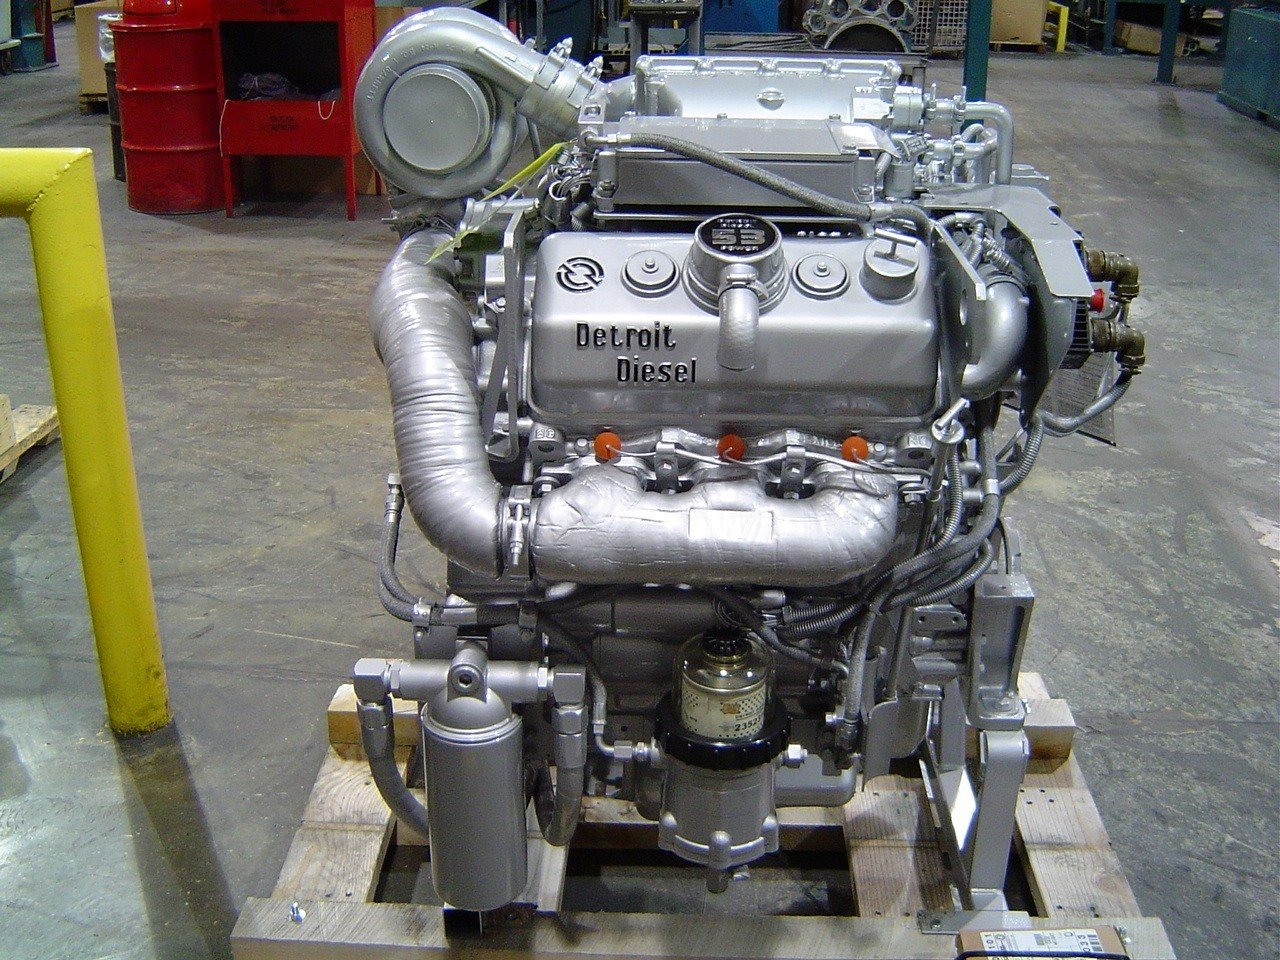 New 2 Stroke Diesel Engine Features A Supercharger And ...